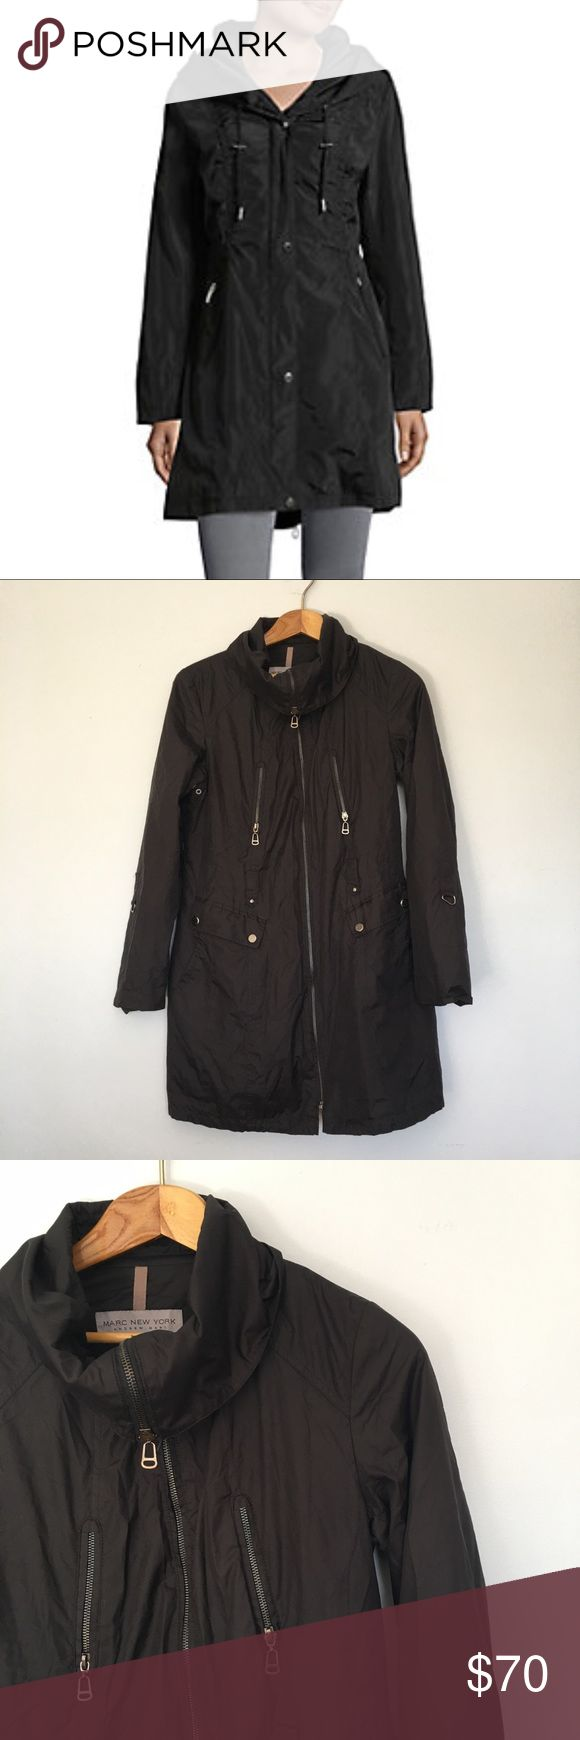 Andrew Marc New York Anorak Rain Jacket Andrew Marc New York Anorak Rain Jacket. Like new condition. First coat is a similar coat by the same brand the last two pictures is the same jacket but in blue. Andrew Marc Jackets & Coats